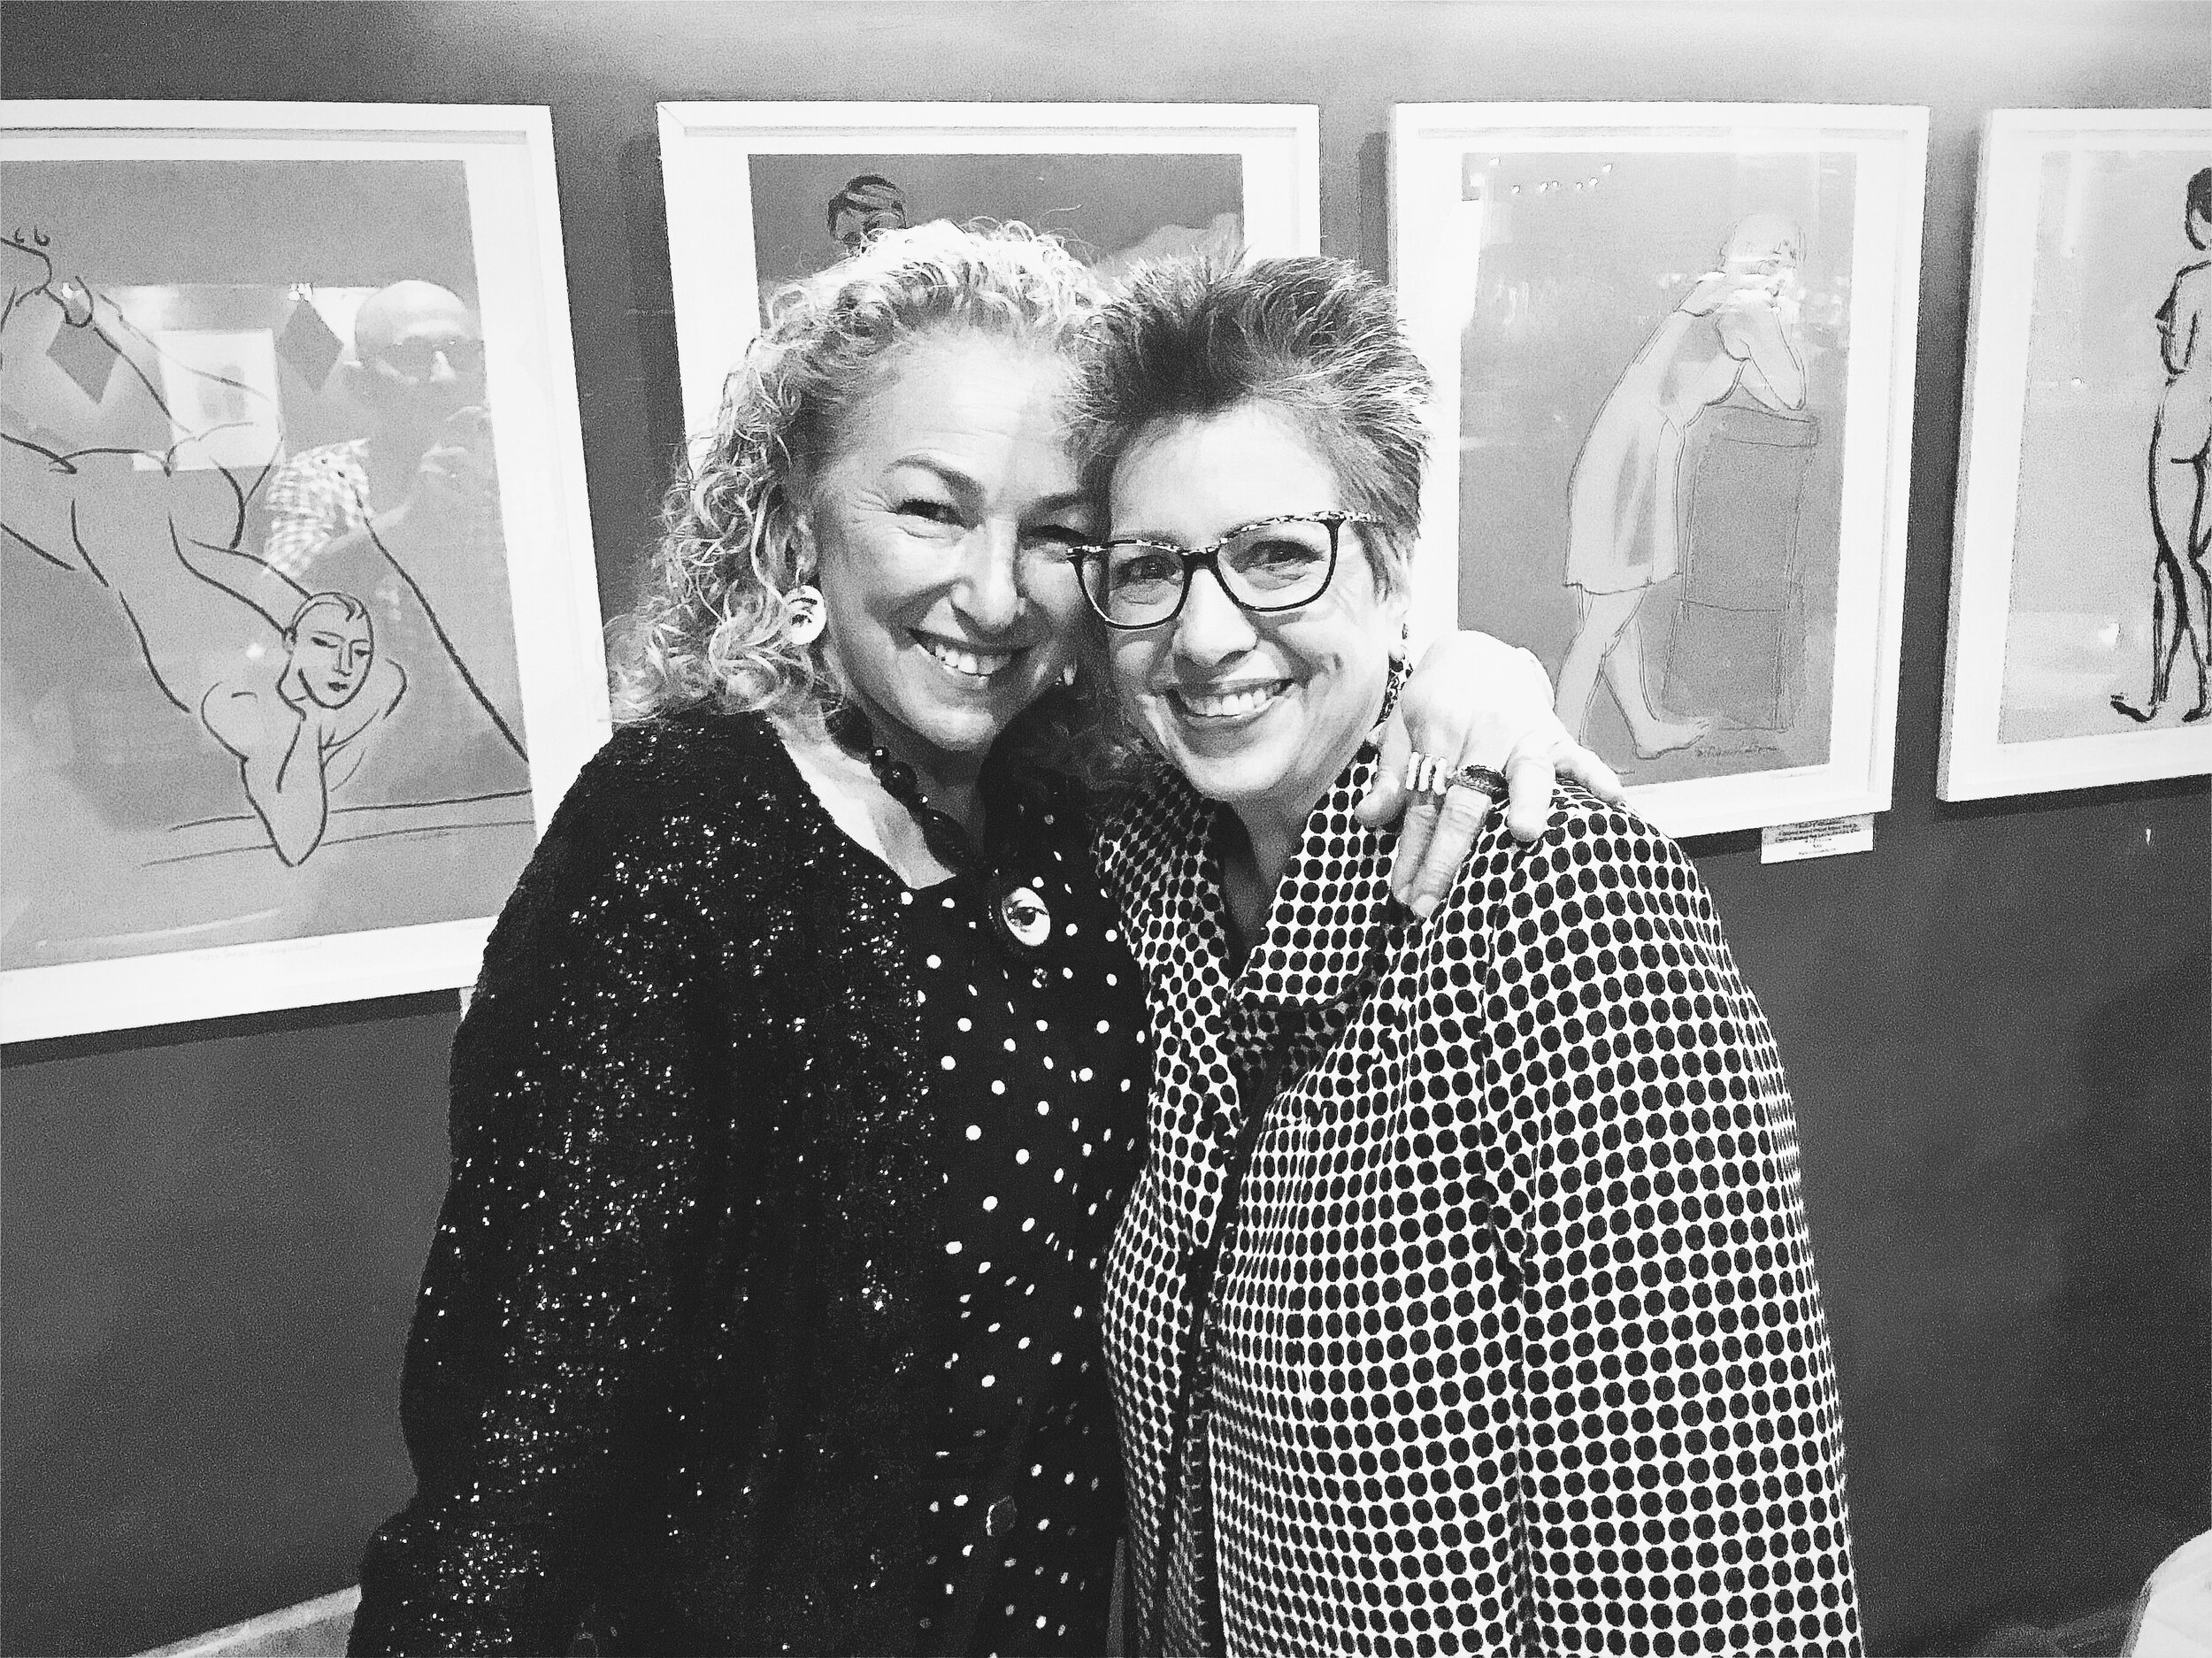 Me and my buddy, author Marta Acosta, in black and white.